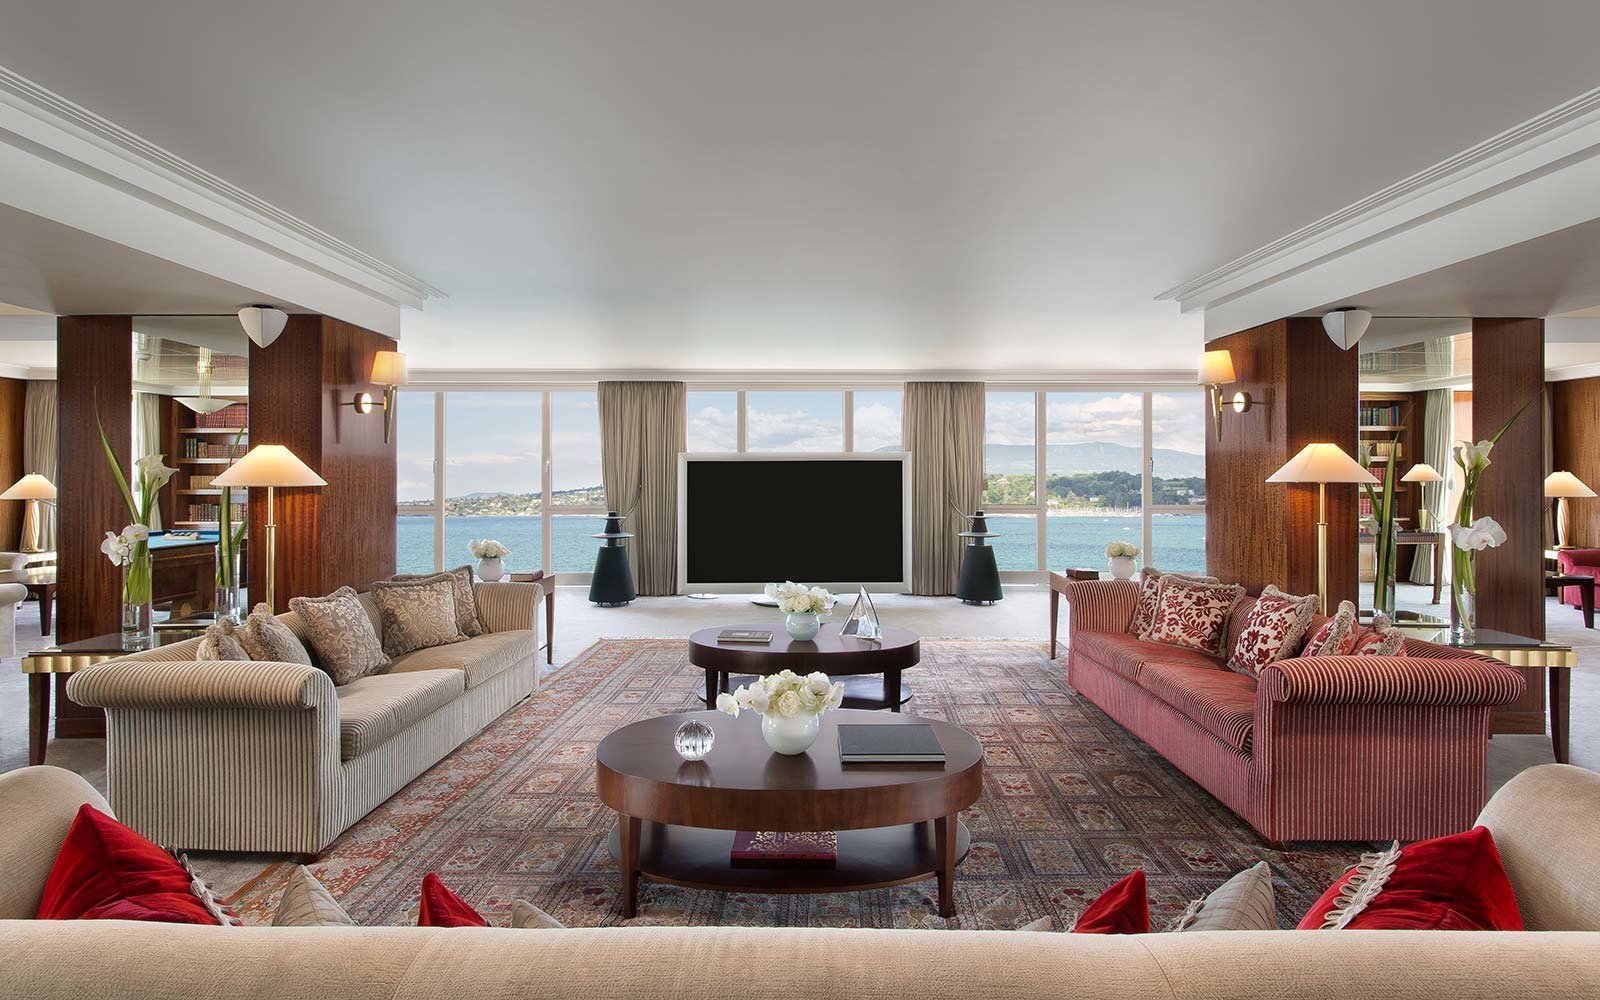 World Expensive Hotel Suite Costs 80 000